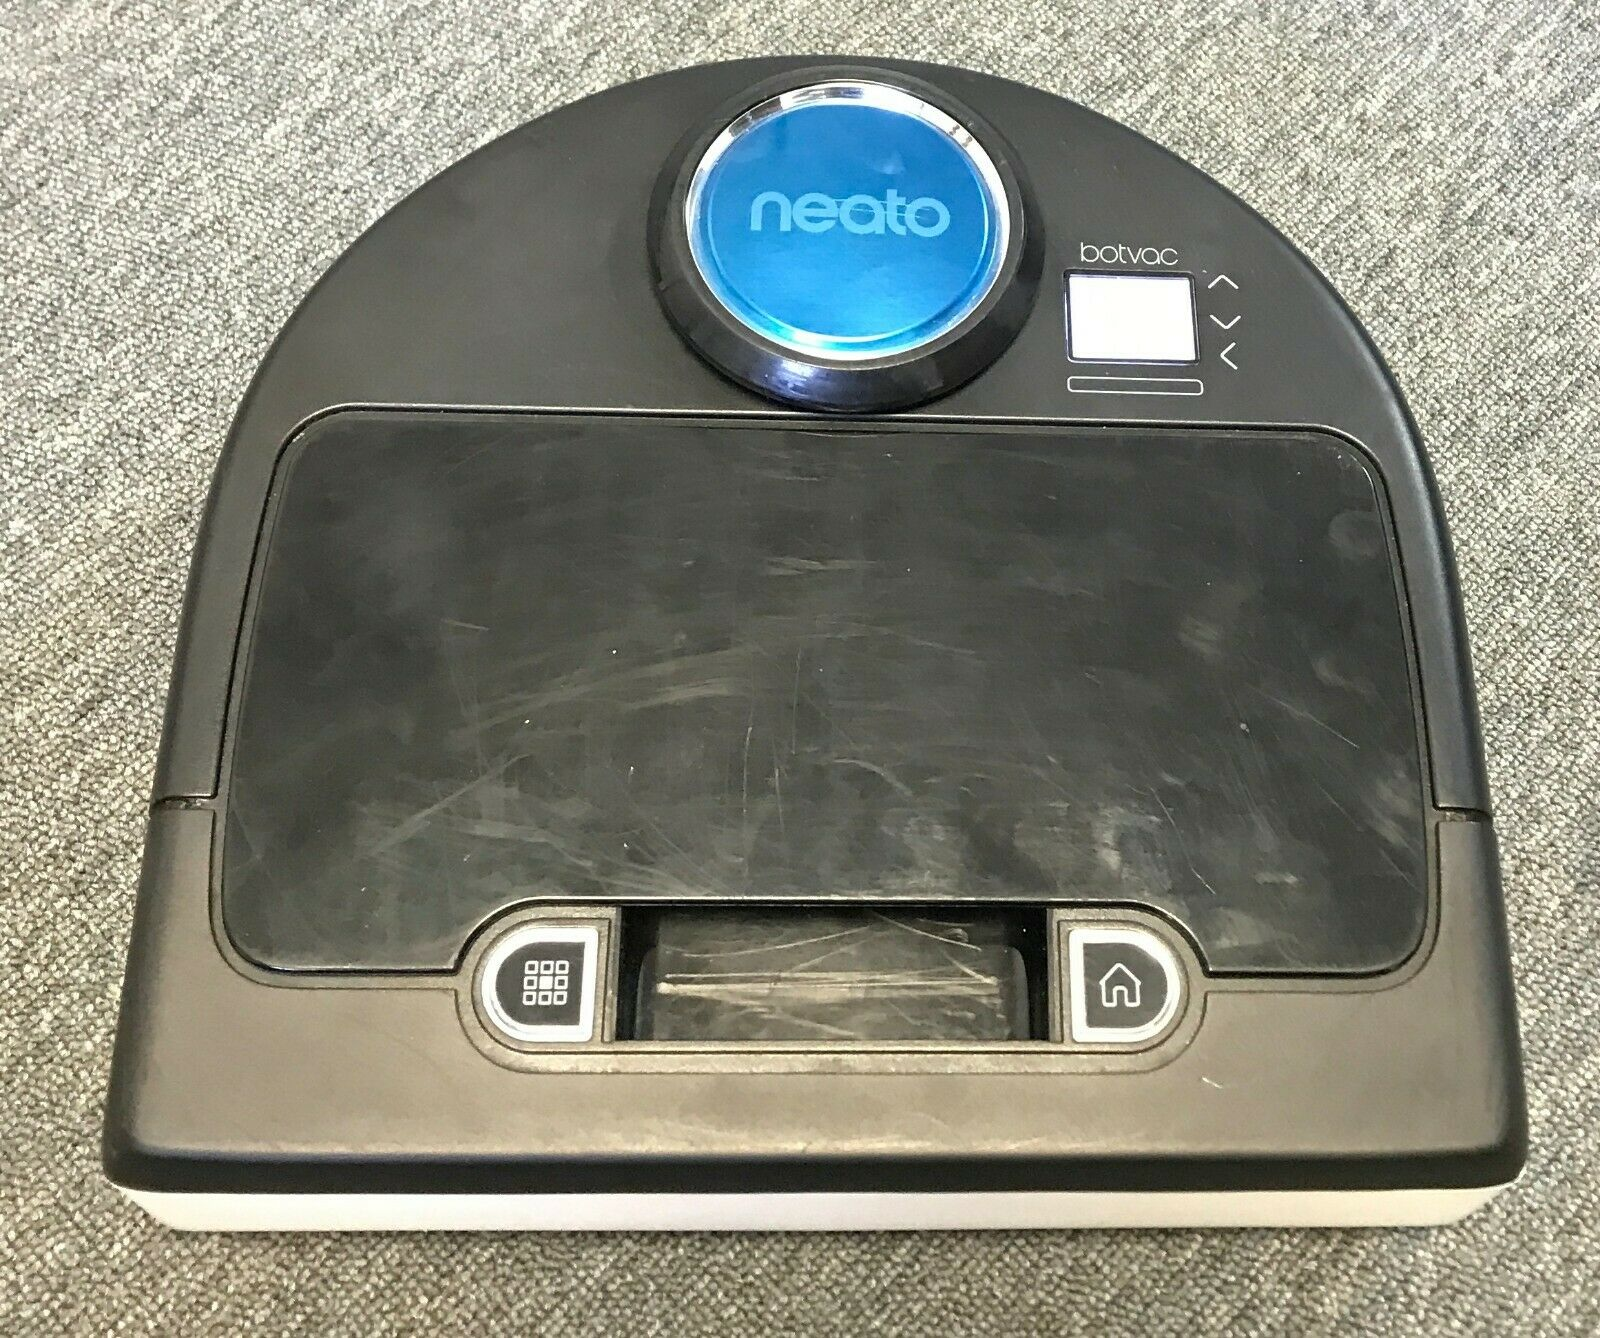 Neato Botvac D80 Bagless Robot Vacuum Cleaner 905-0285 AS-IS needs battery